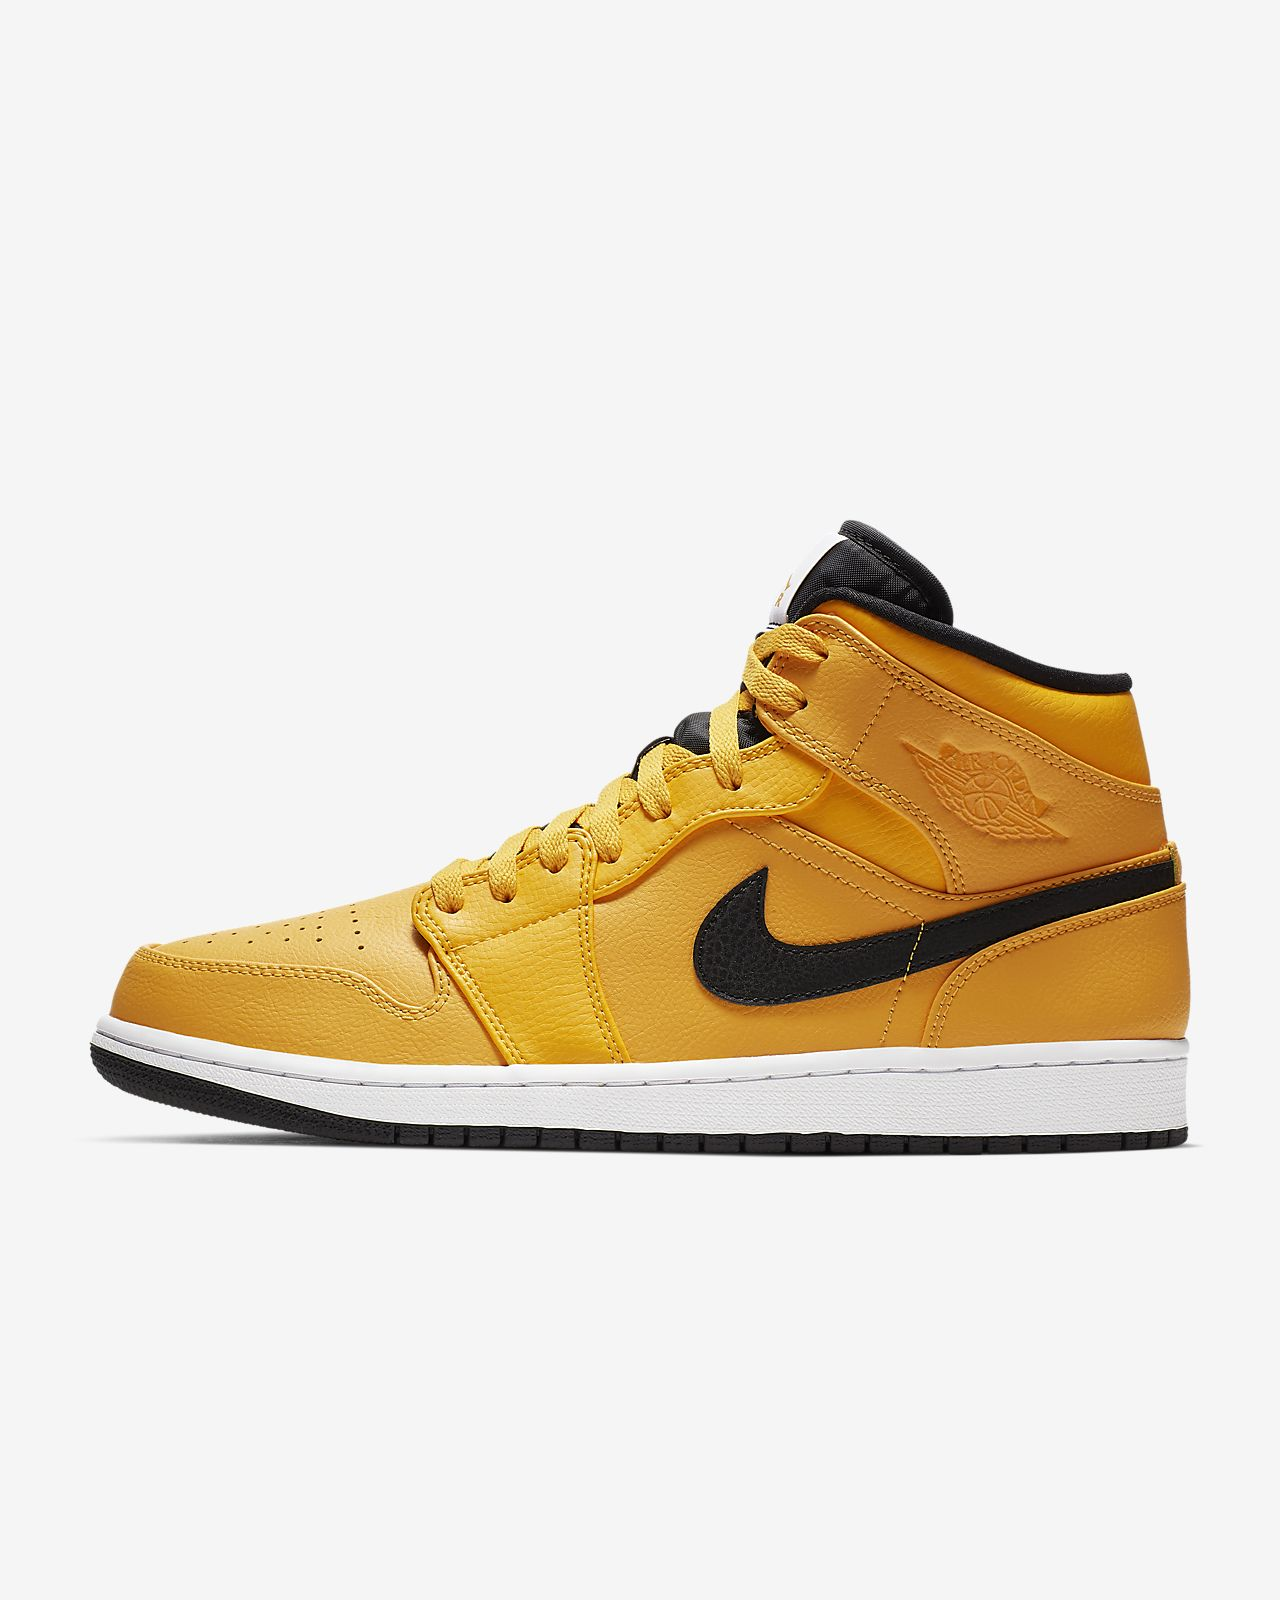 pick up 9d08d 62604 ... Air Jordan 1 Mid Men s Shoe